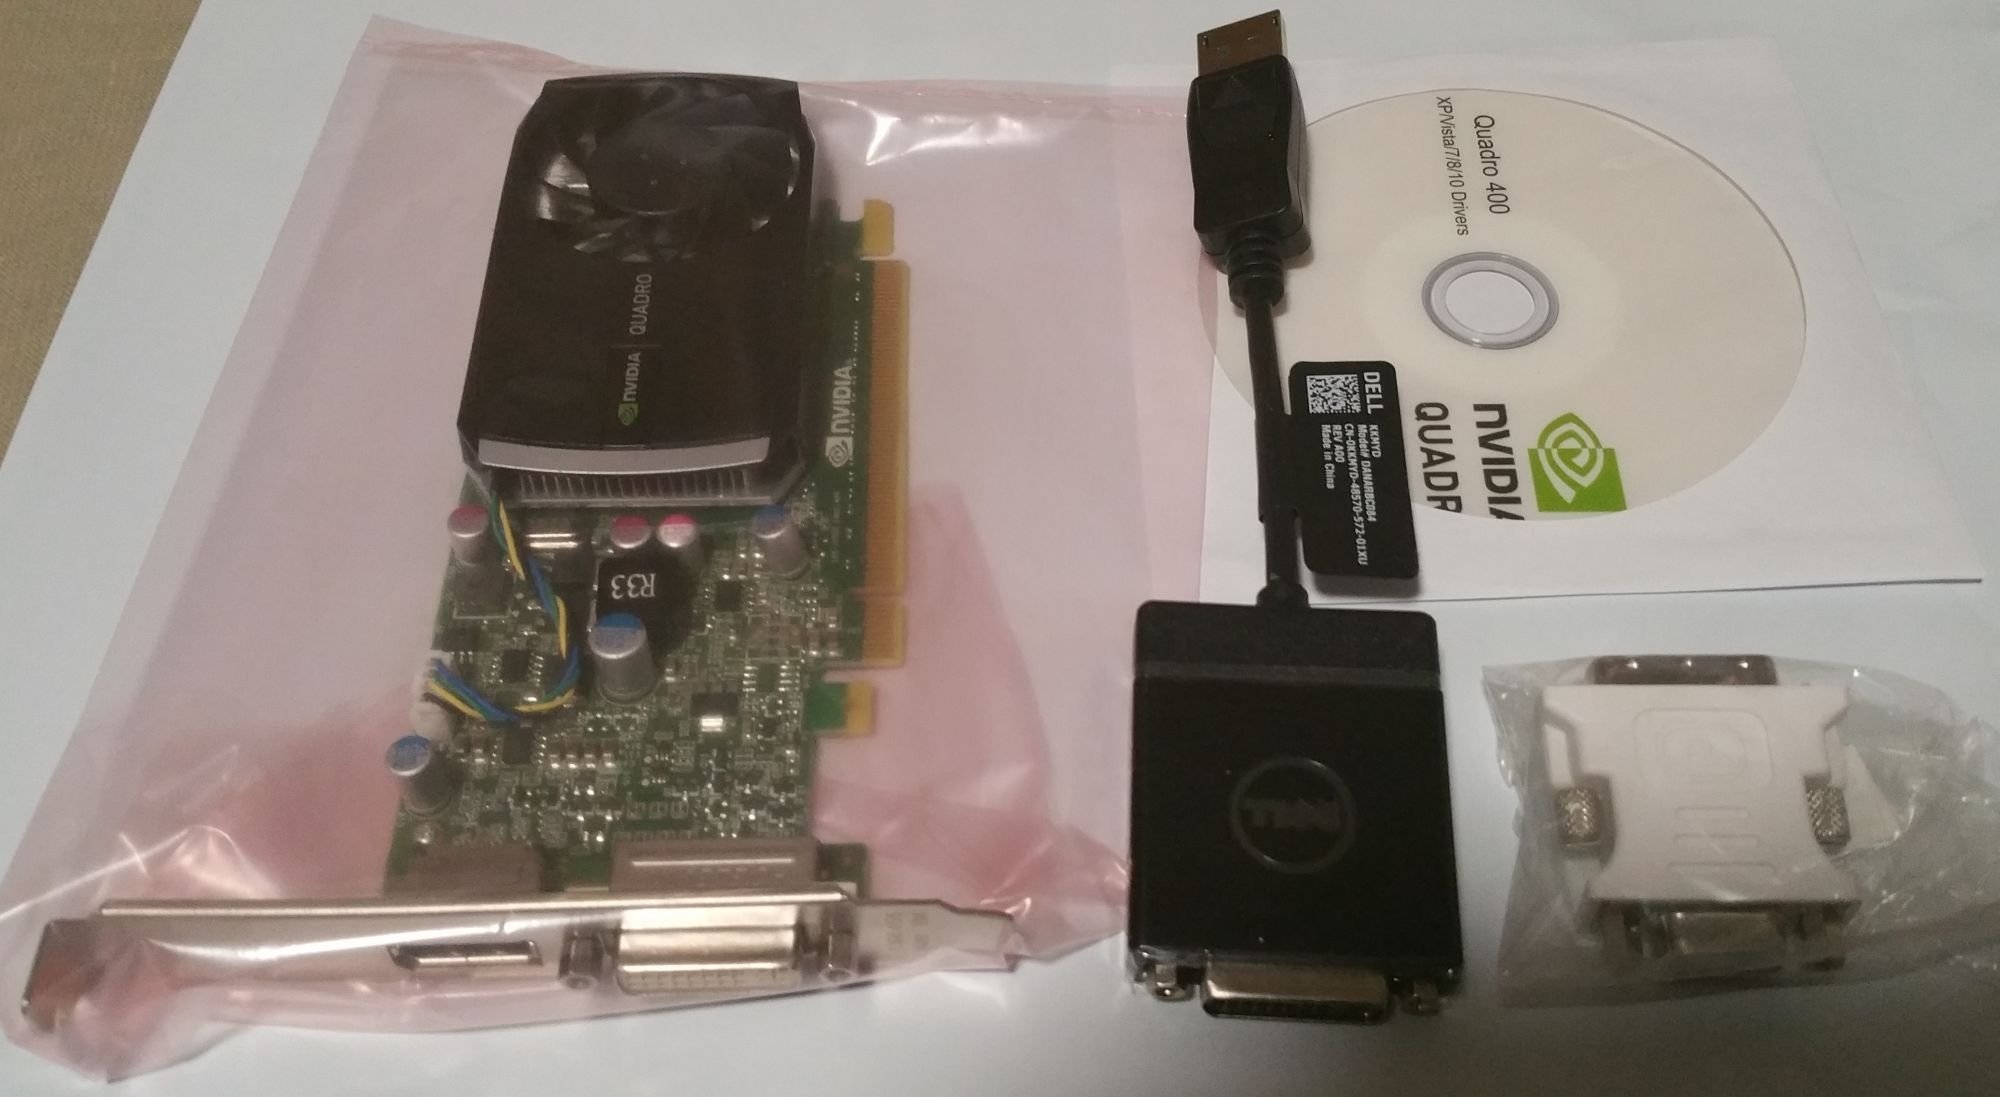 NVIDIA Quadro 400 512 MB Professional Video Graphics Card, Replacement For Lenovo 0A36535, PNY VC7400-PB, HP LD542AA LD542AT, Dell HWGX0, DDR3 PCI Express Gen 2 x16 DVI-I DL and DisplayPort Open GL, DirectX, and CUDA, Drivers NOT Included by NVIDIA (Image #1)